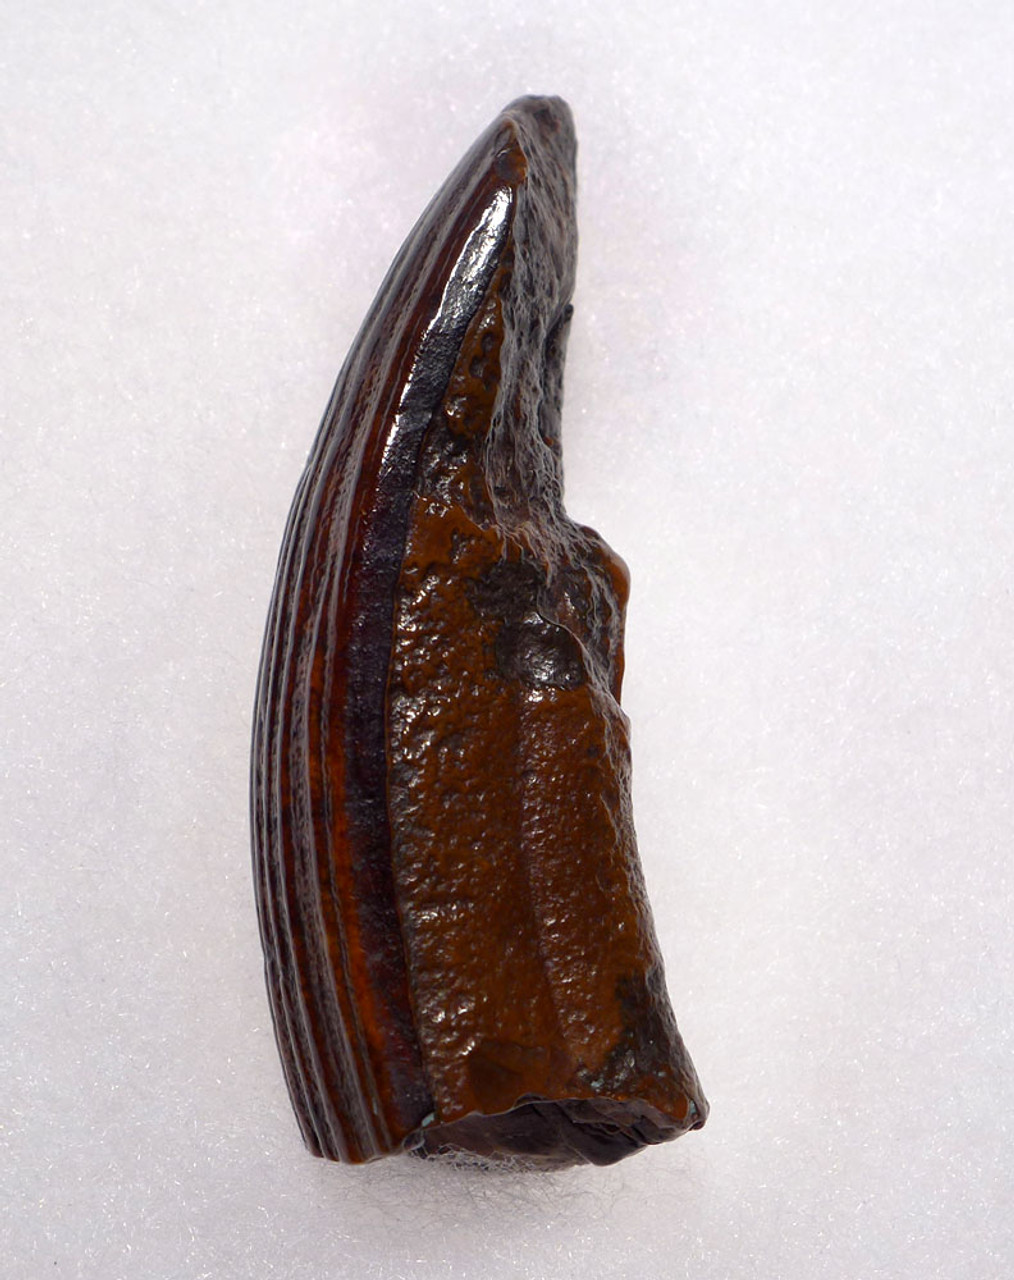 COPPER RED FOSSIL TUSK INCISCOR OF A PREHISTORIC CASTOROIDES GIANT BEAVER  *LMX259